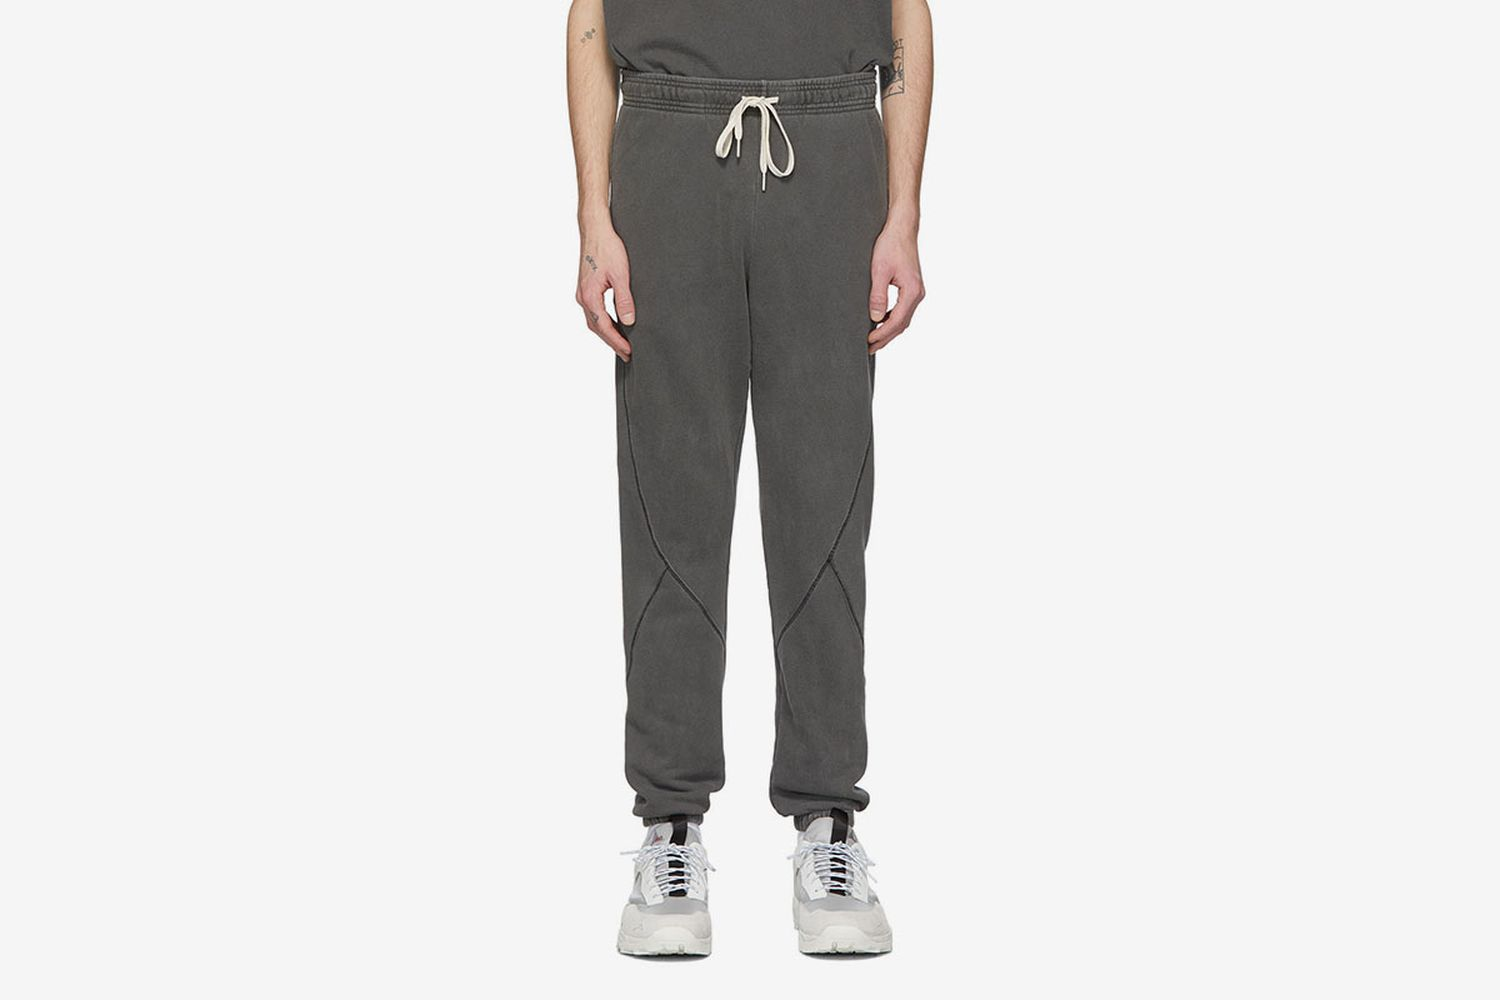 Loose Stitch Lounge Pants